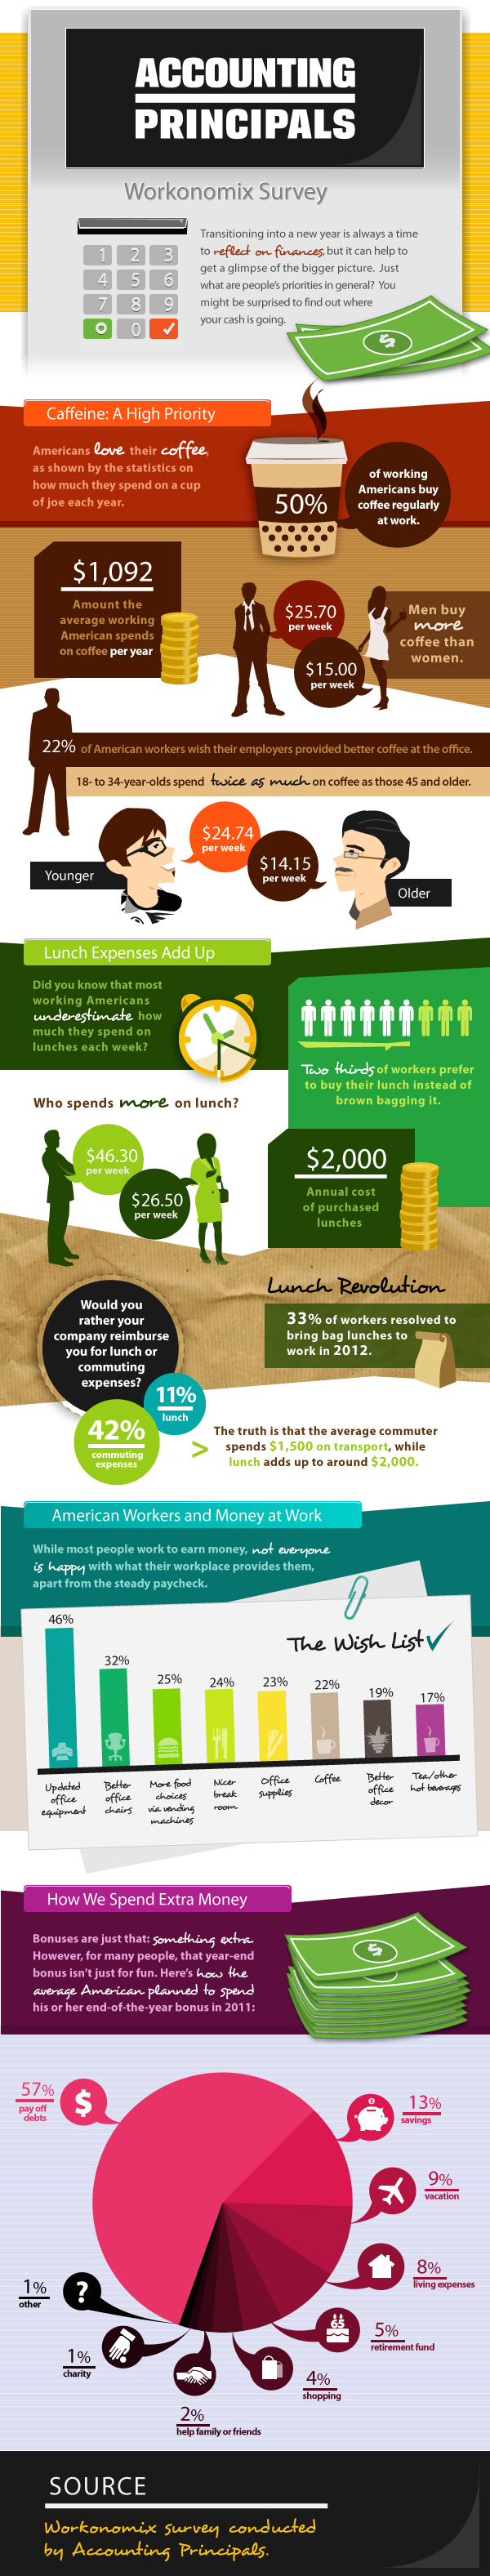 Infographic: How much are Americans spending on Coffee every year?